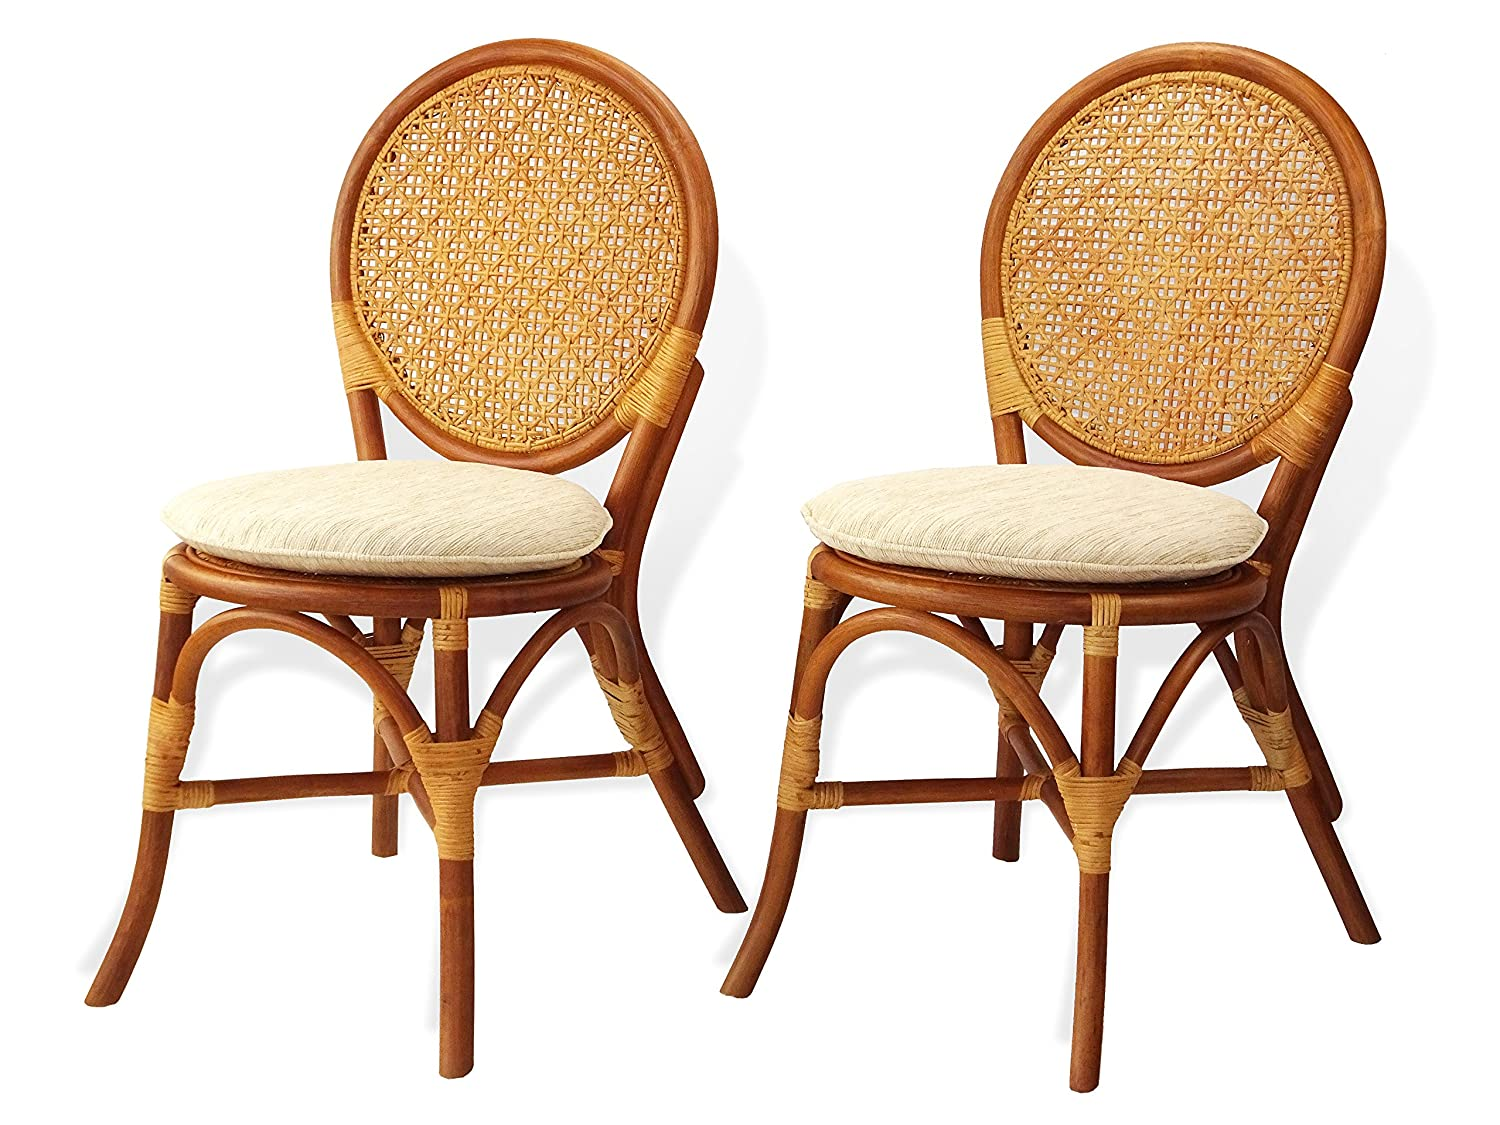 Rattan Wicker Furniture Set Of 2 Denver Dining Armless Accent Wicker Side Chair Handmade Colonial